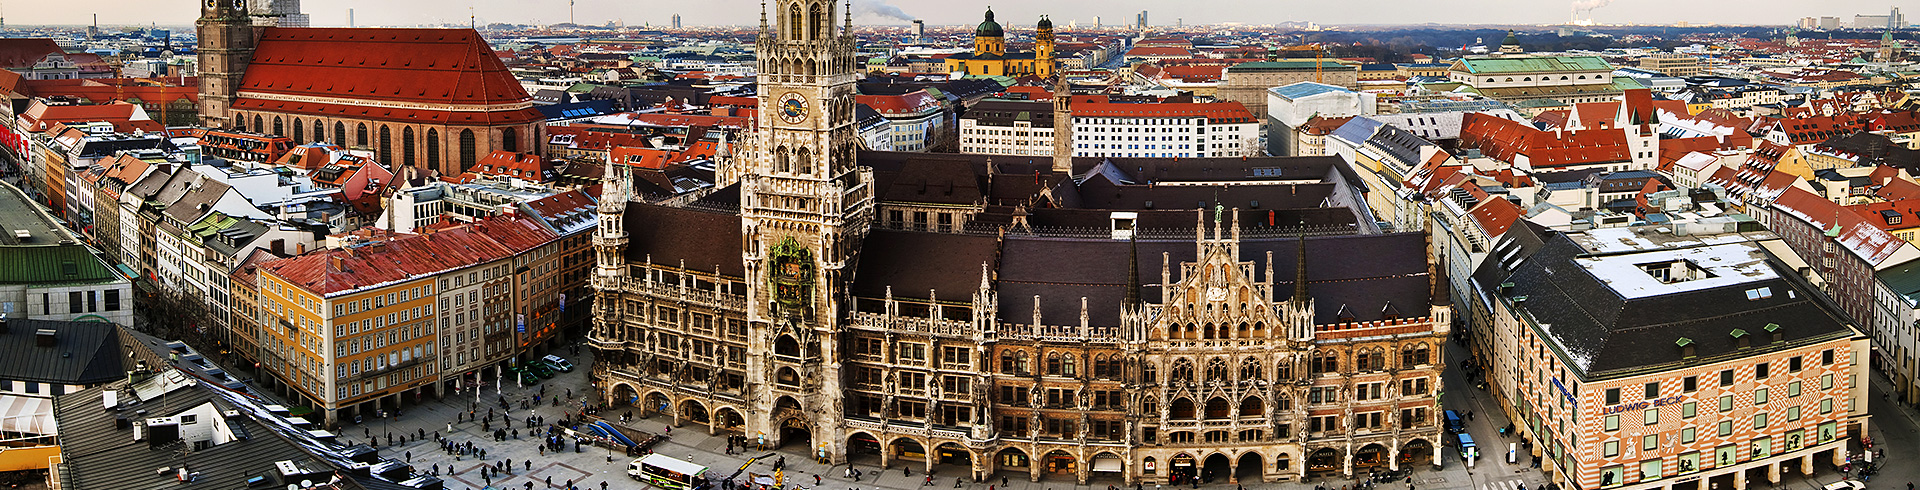 Discounted flight tickets to Munich - IFlyFirstClass